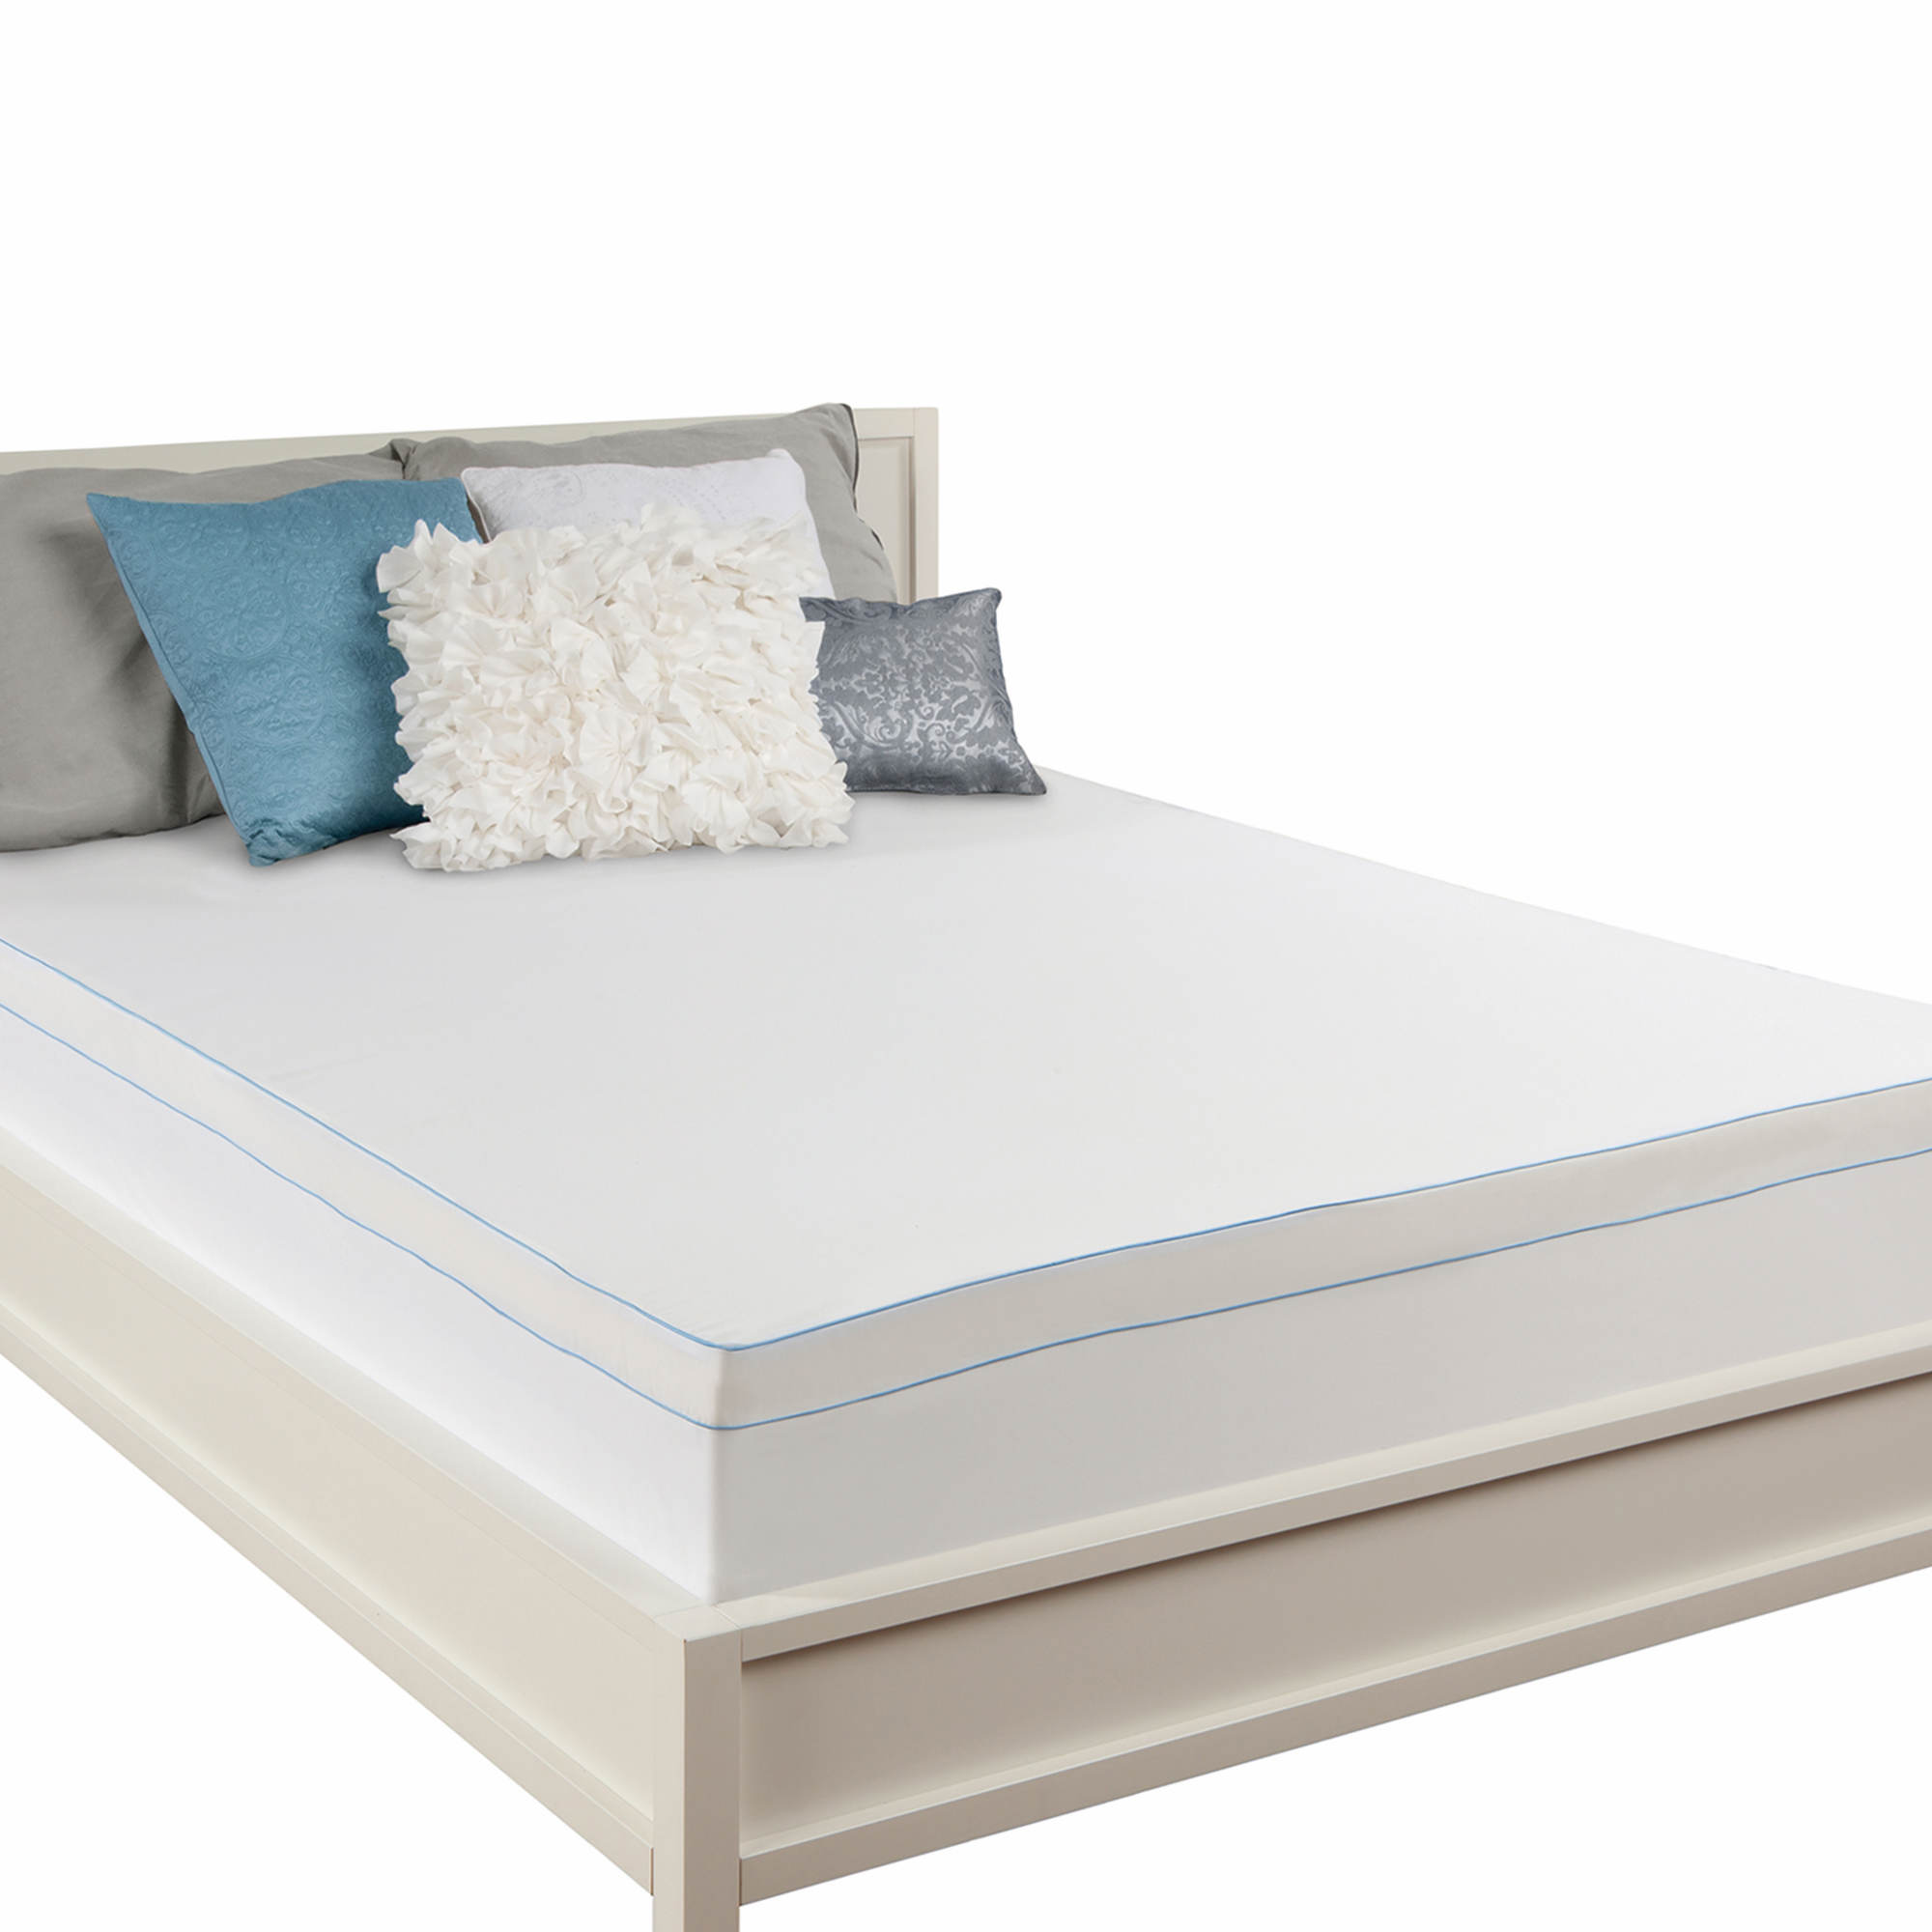 wayfair king inch luxury unique memory gel elegant foam airflow quilted of select size mattress